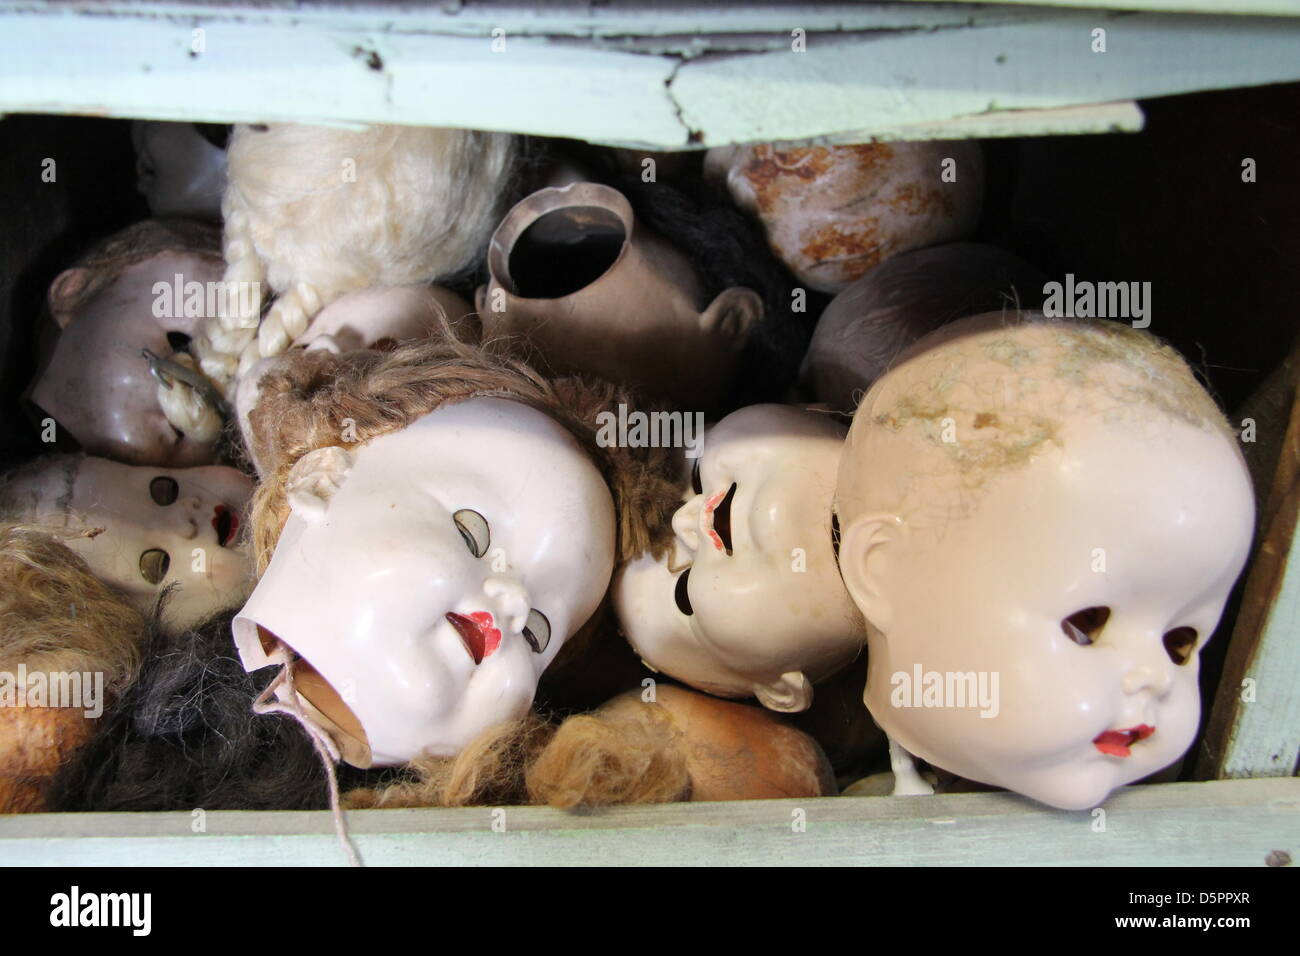 doll on shelf stock photos doll on shelf stock images alamy